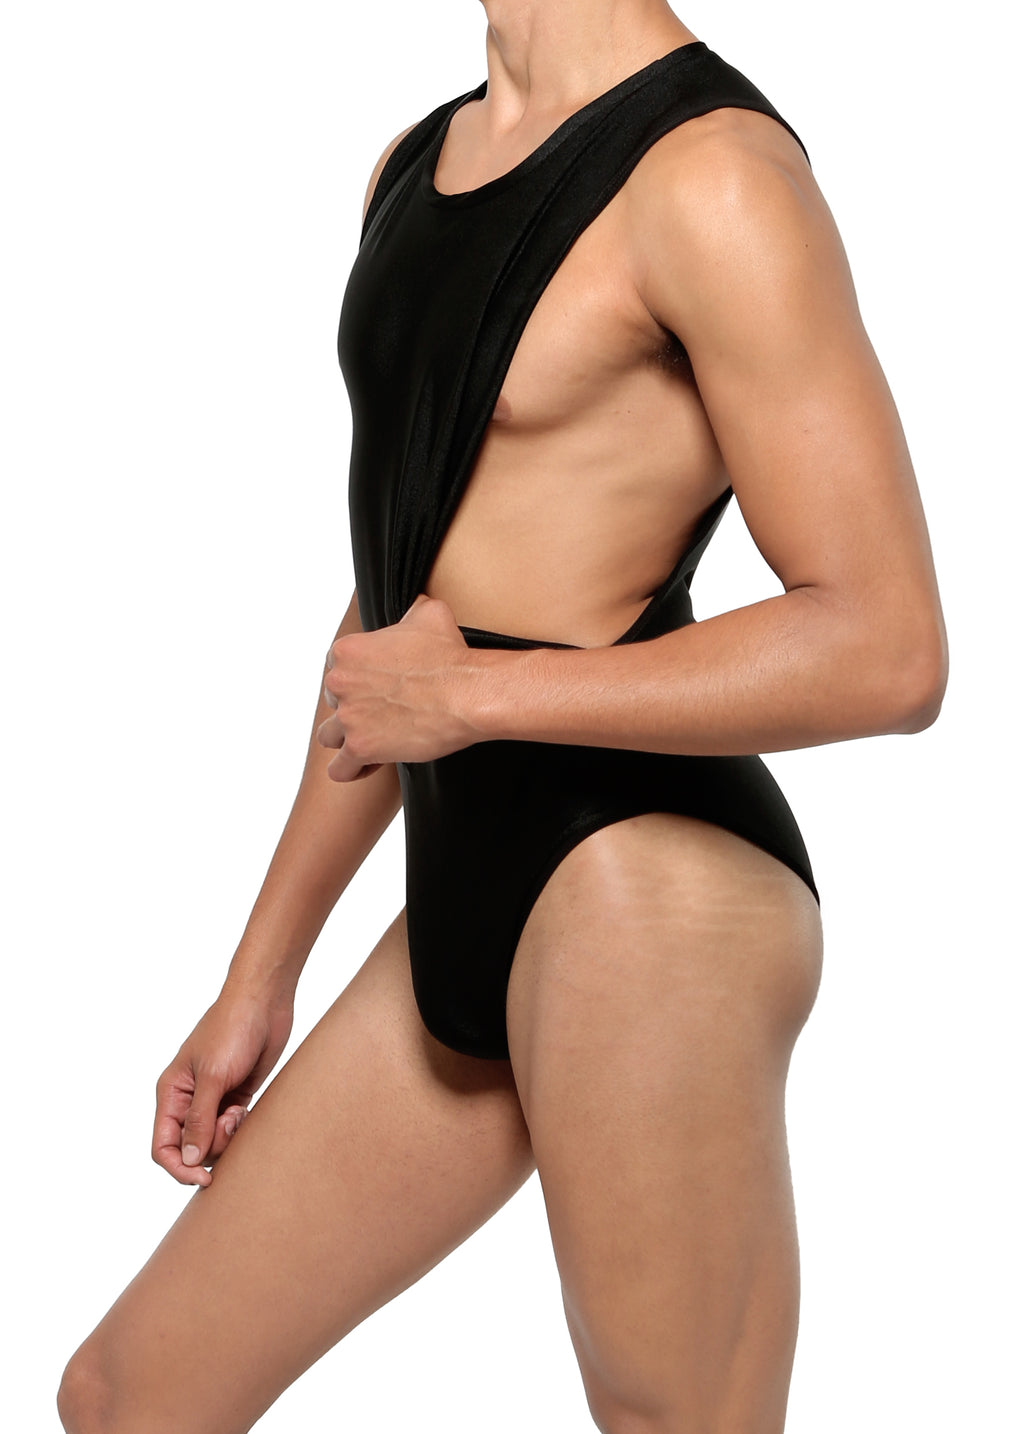 One Piece Swim Bikini - MENAGERIE Intimates MENS Lingerie